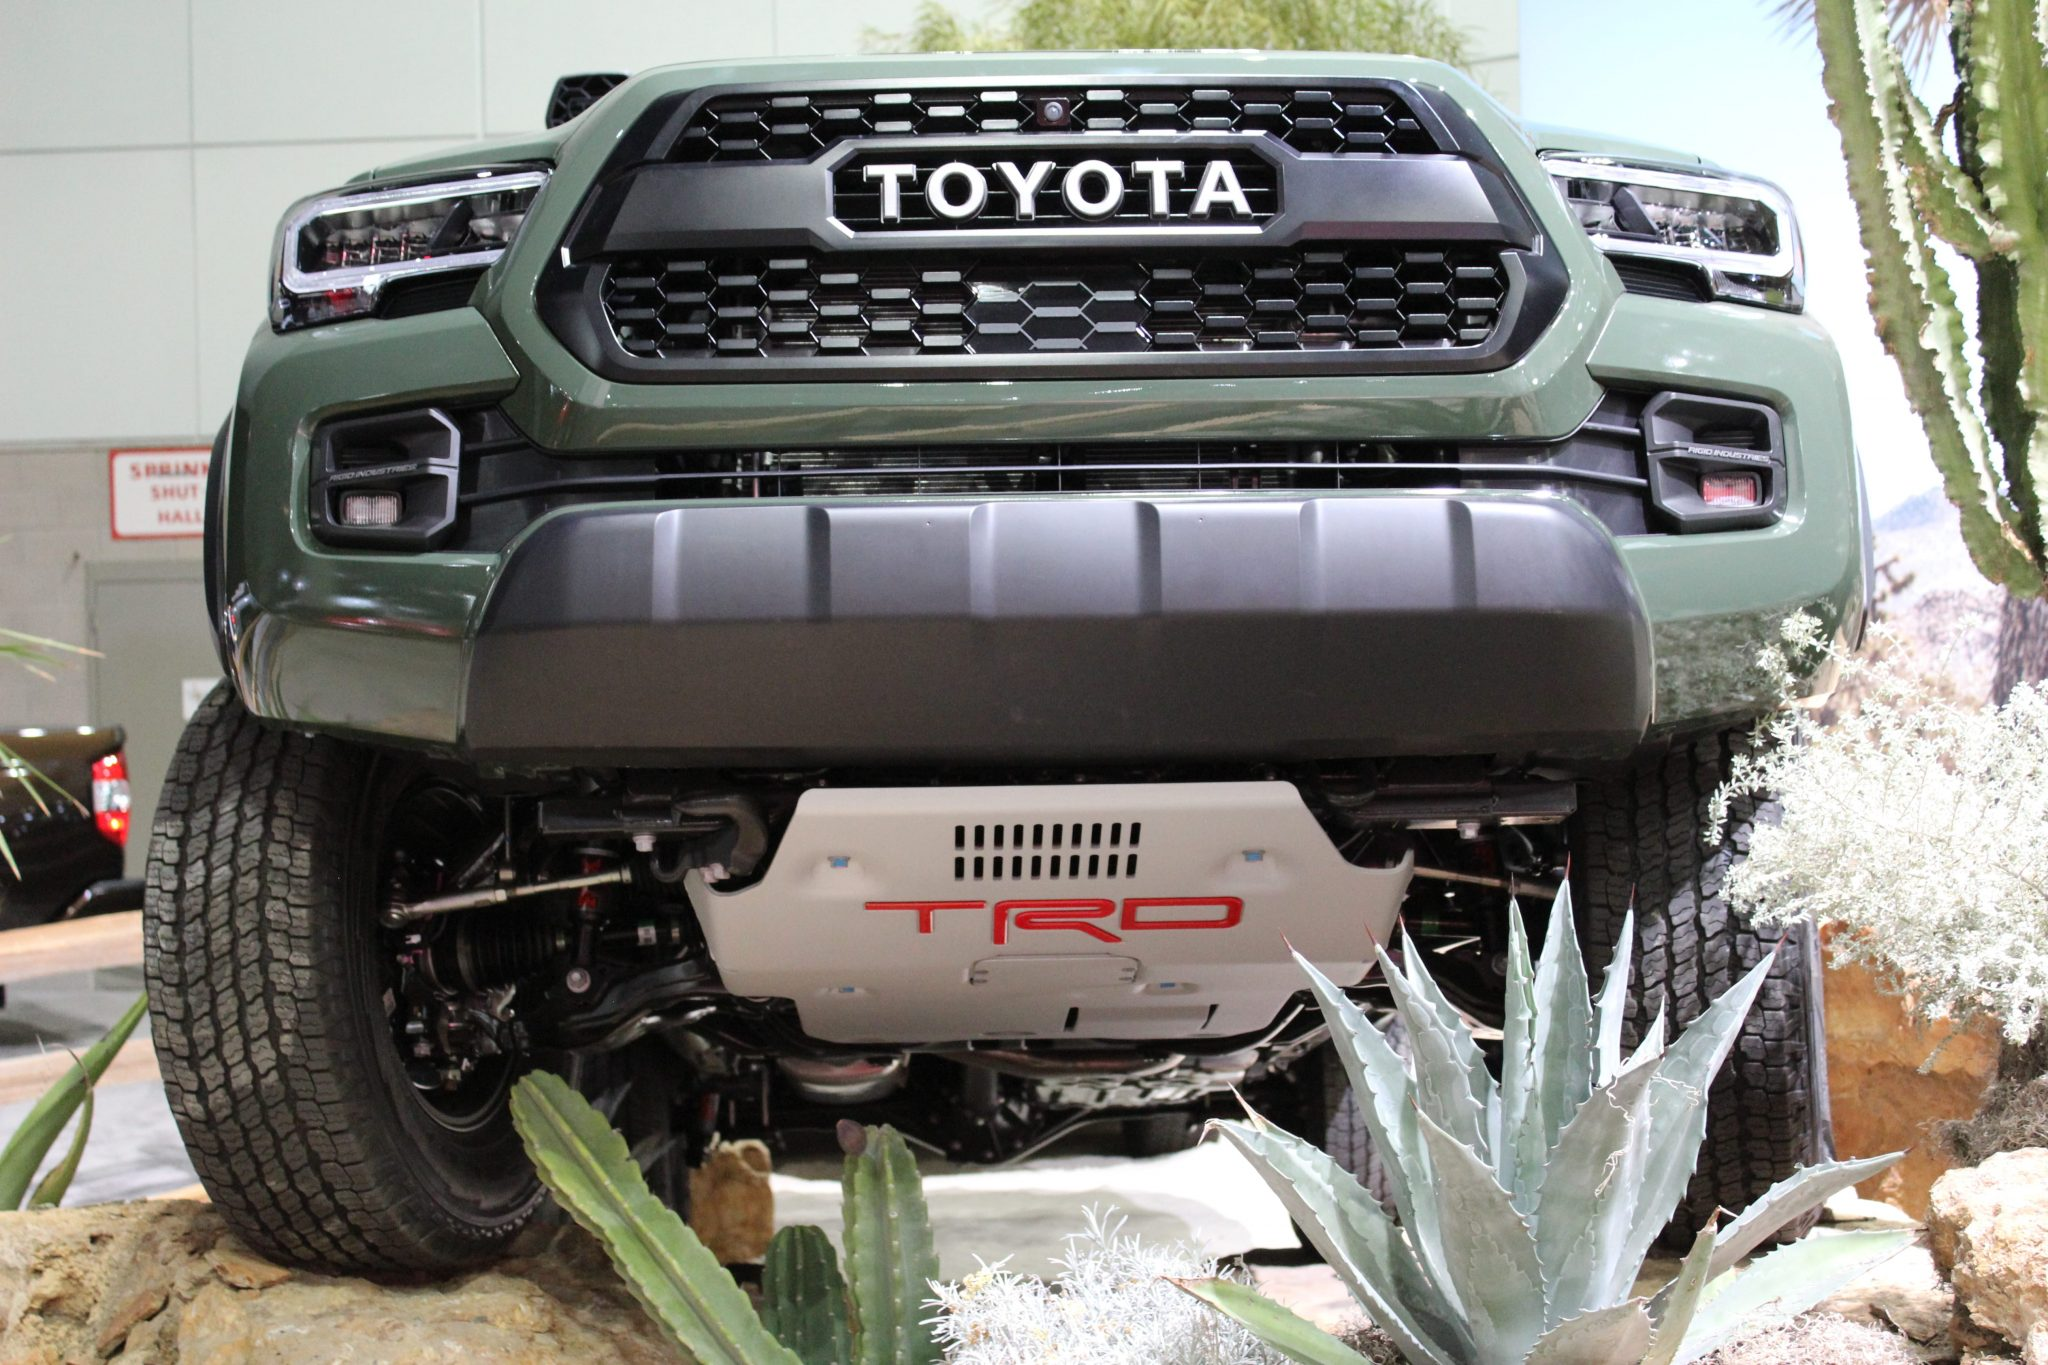 Toyota TRD Pro Tundra, Tacoma, and 4runner